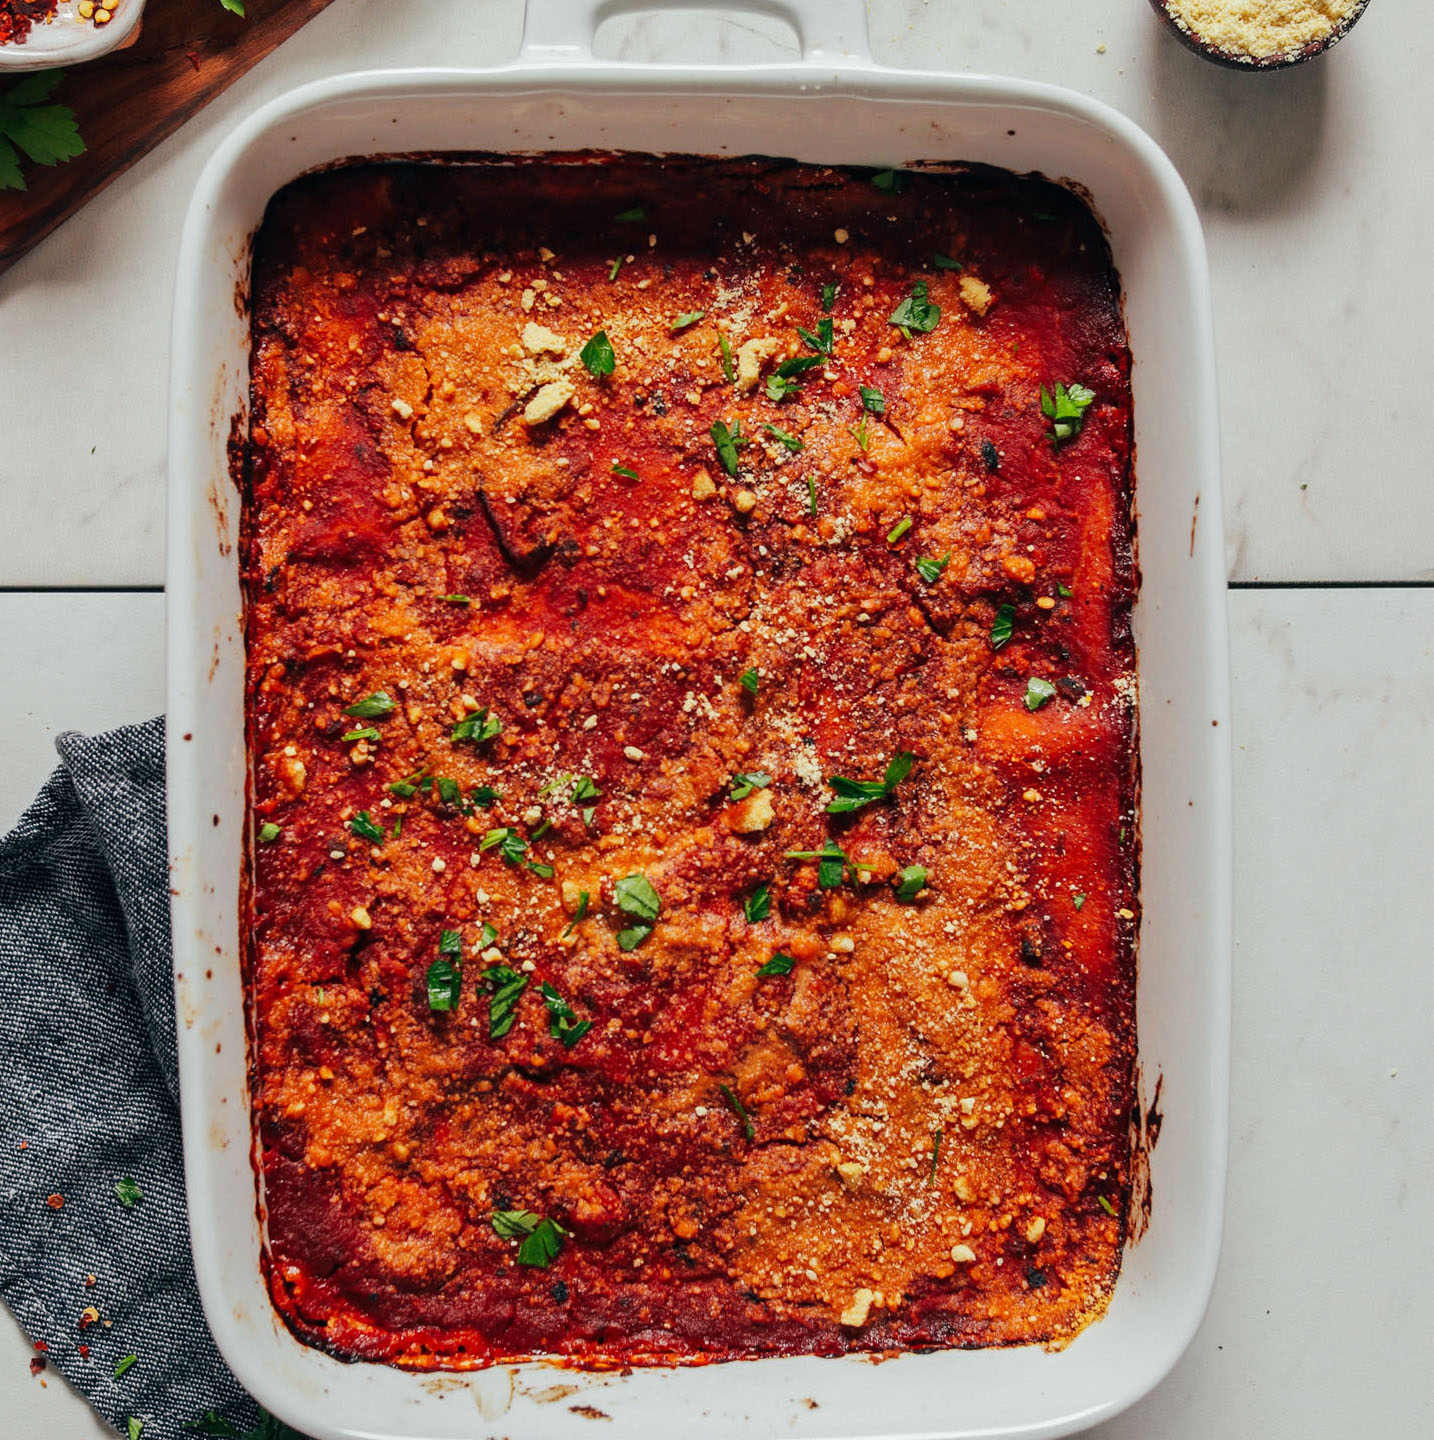 Baking dish of Easy Vegan Lasagna topped with chopped parsley